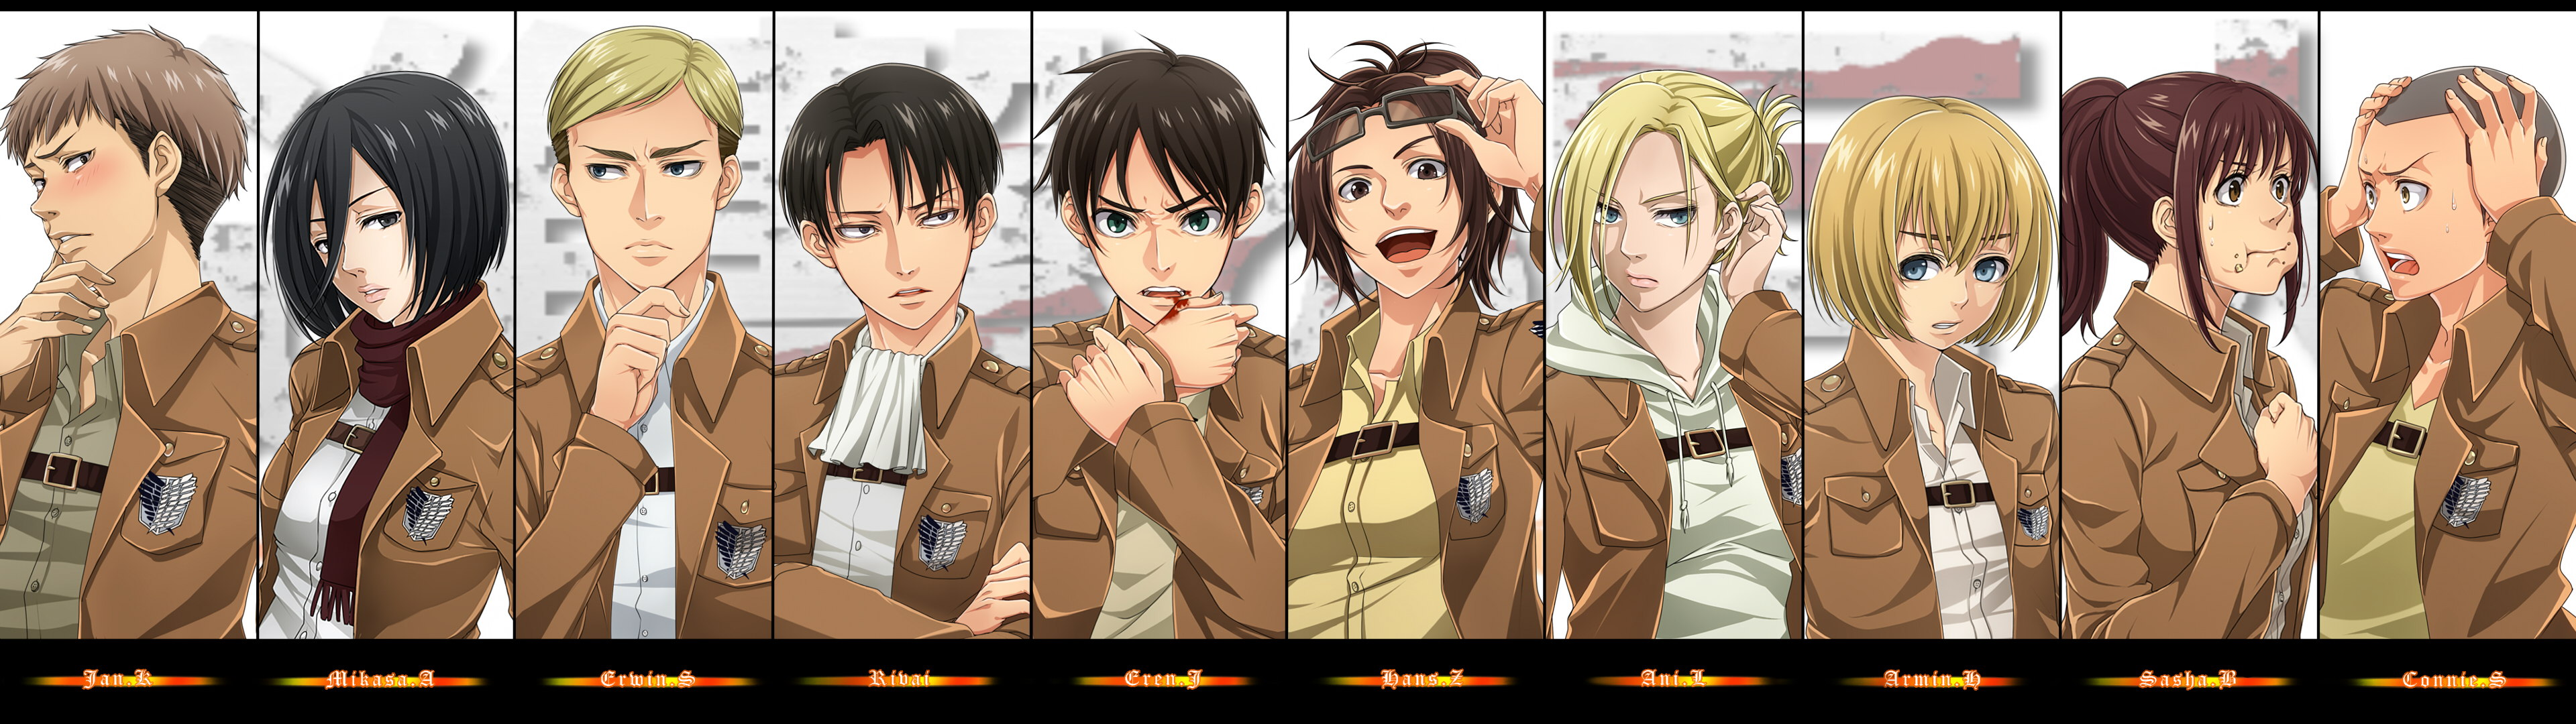 attack on titan fan shop